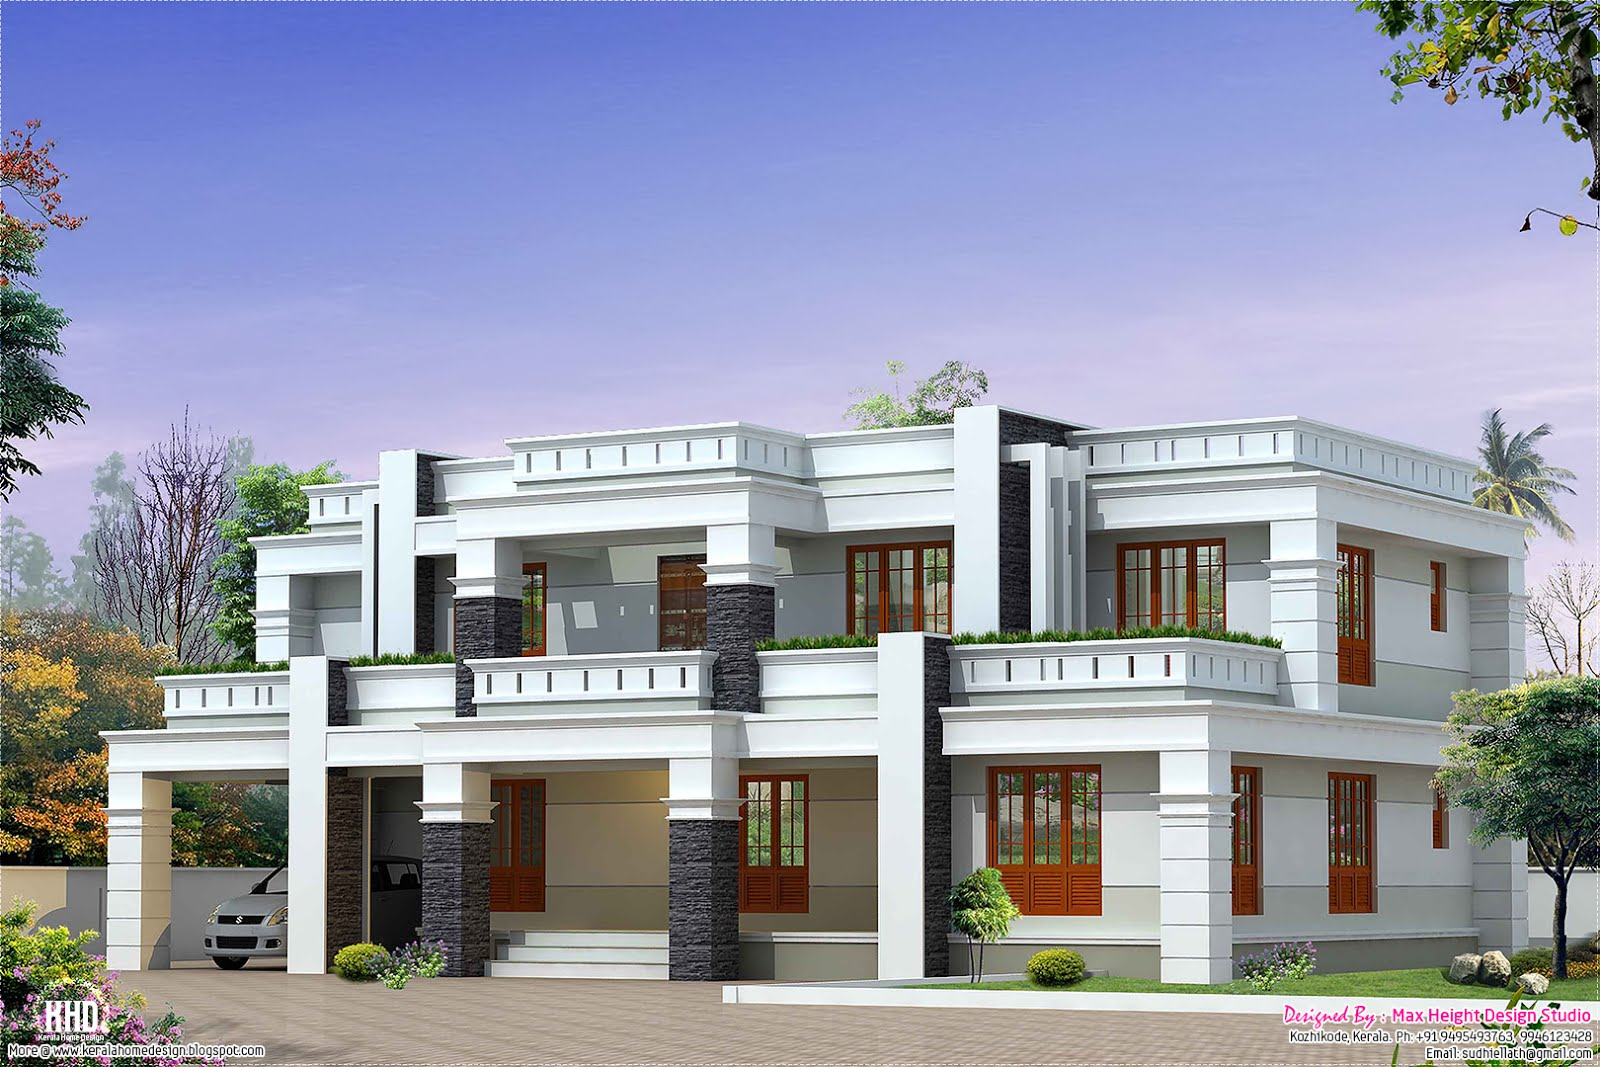 Flat roof luxury home design - Kerala home design and floor plans